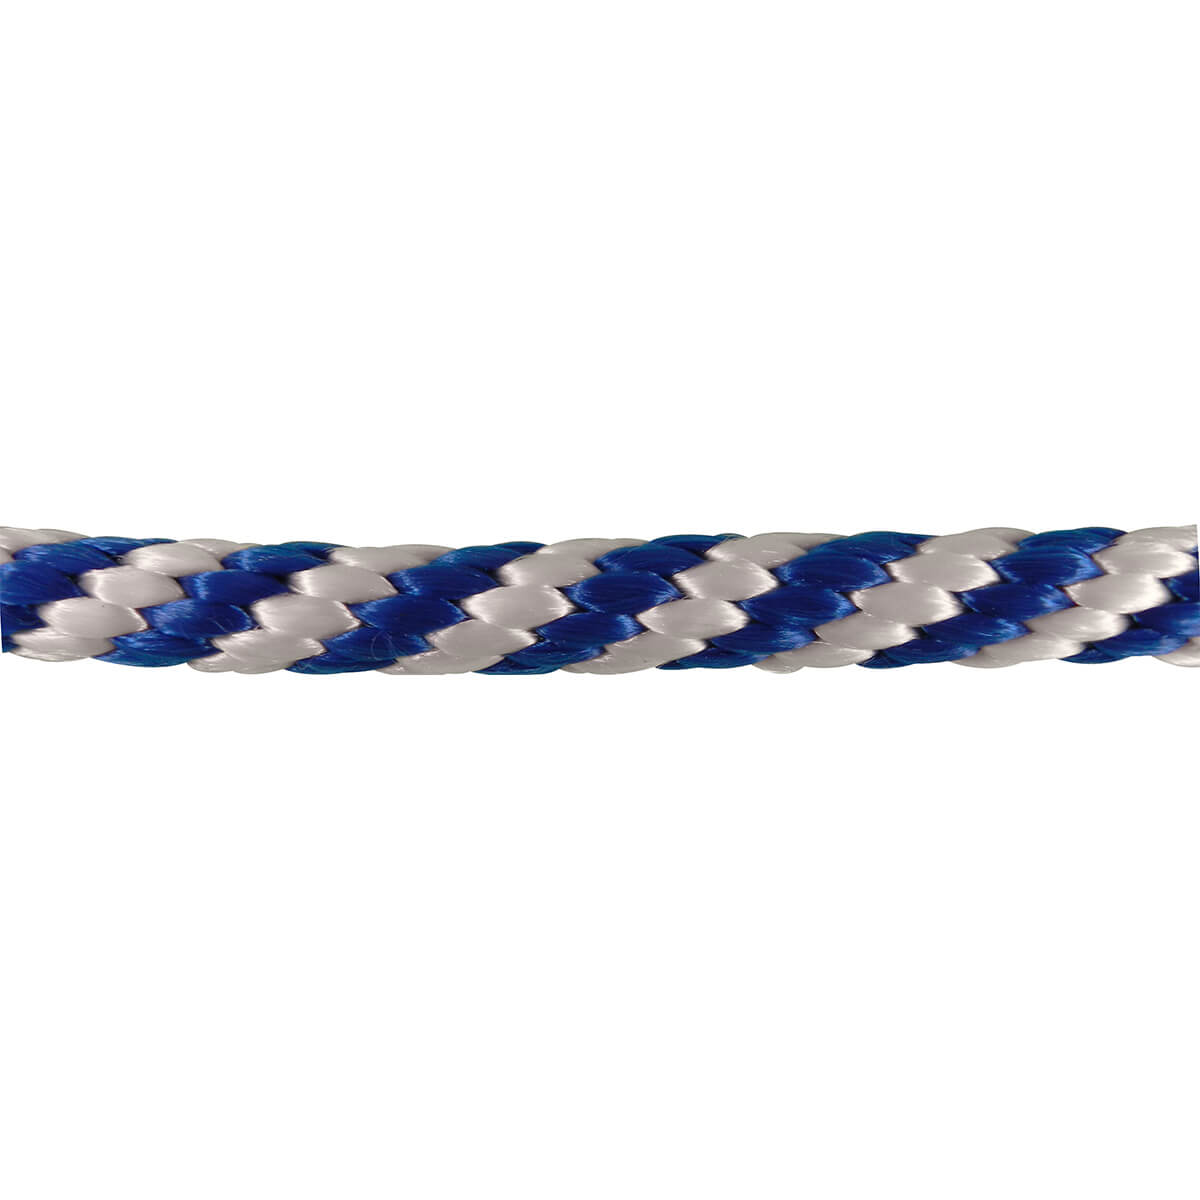 "Polypropylene Solid Braid Rope - Blue/White - 5/8"" (price per foot)"